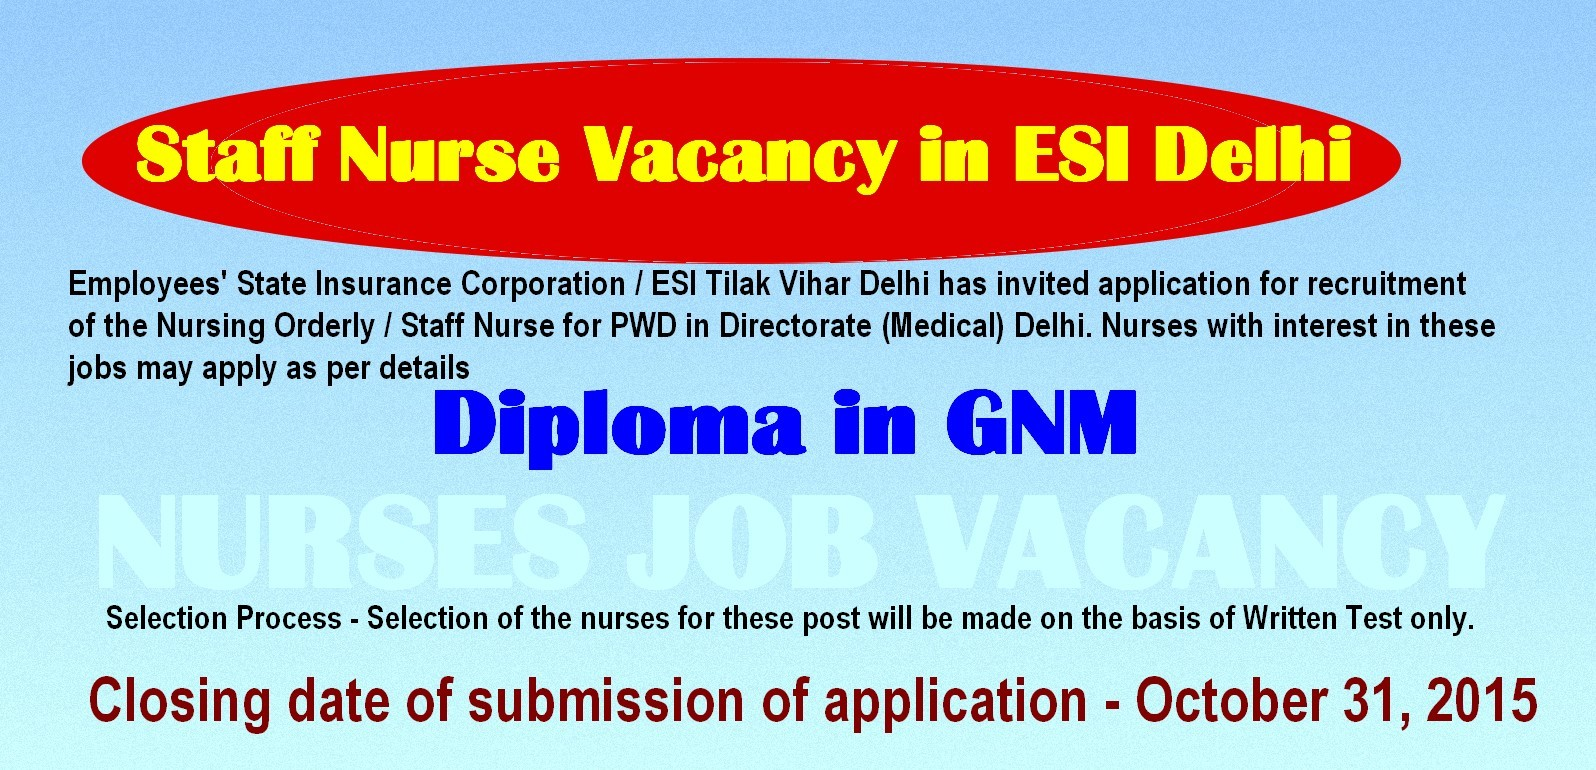 nurses job vacancy nursing orderly staff nurse vacancy in esi employees state insurance corporation esi tilak vihar delhi has invited application for recruitment of the nursing orderly staff nurse for pwd in